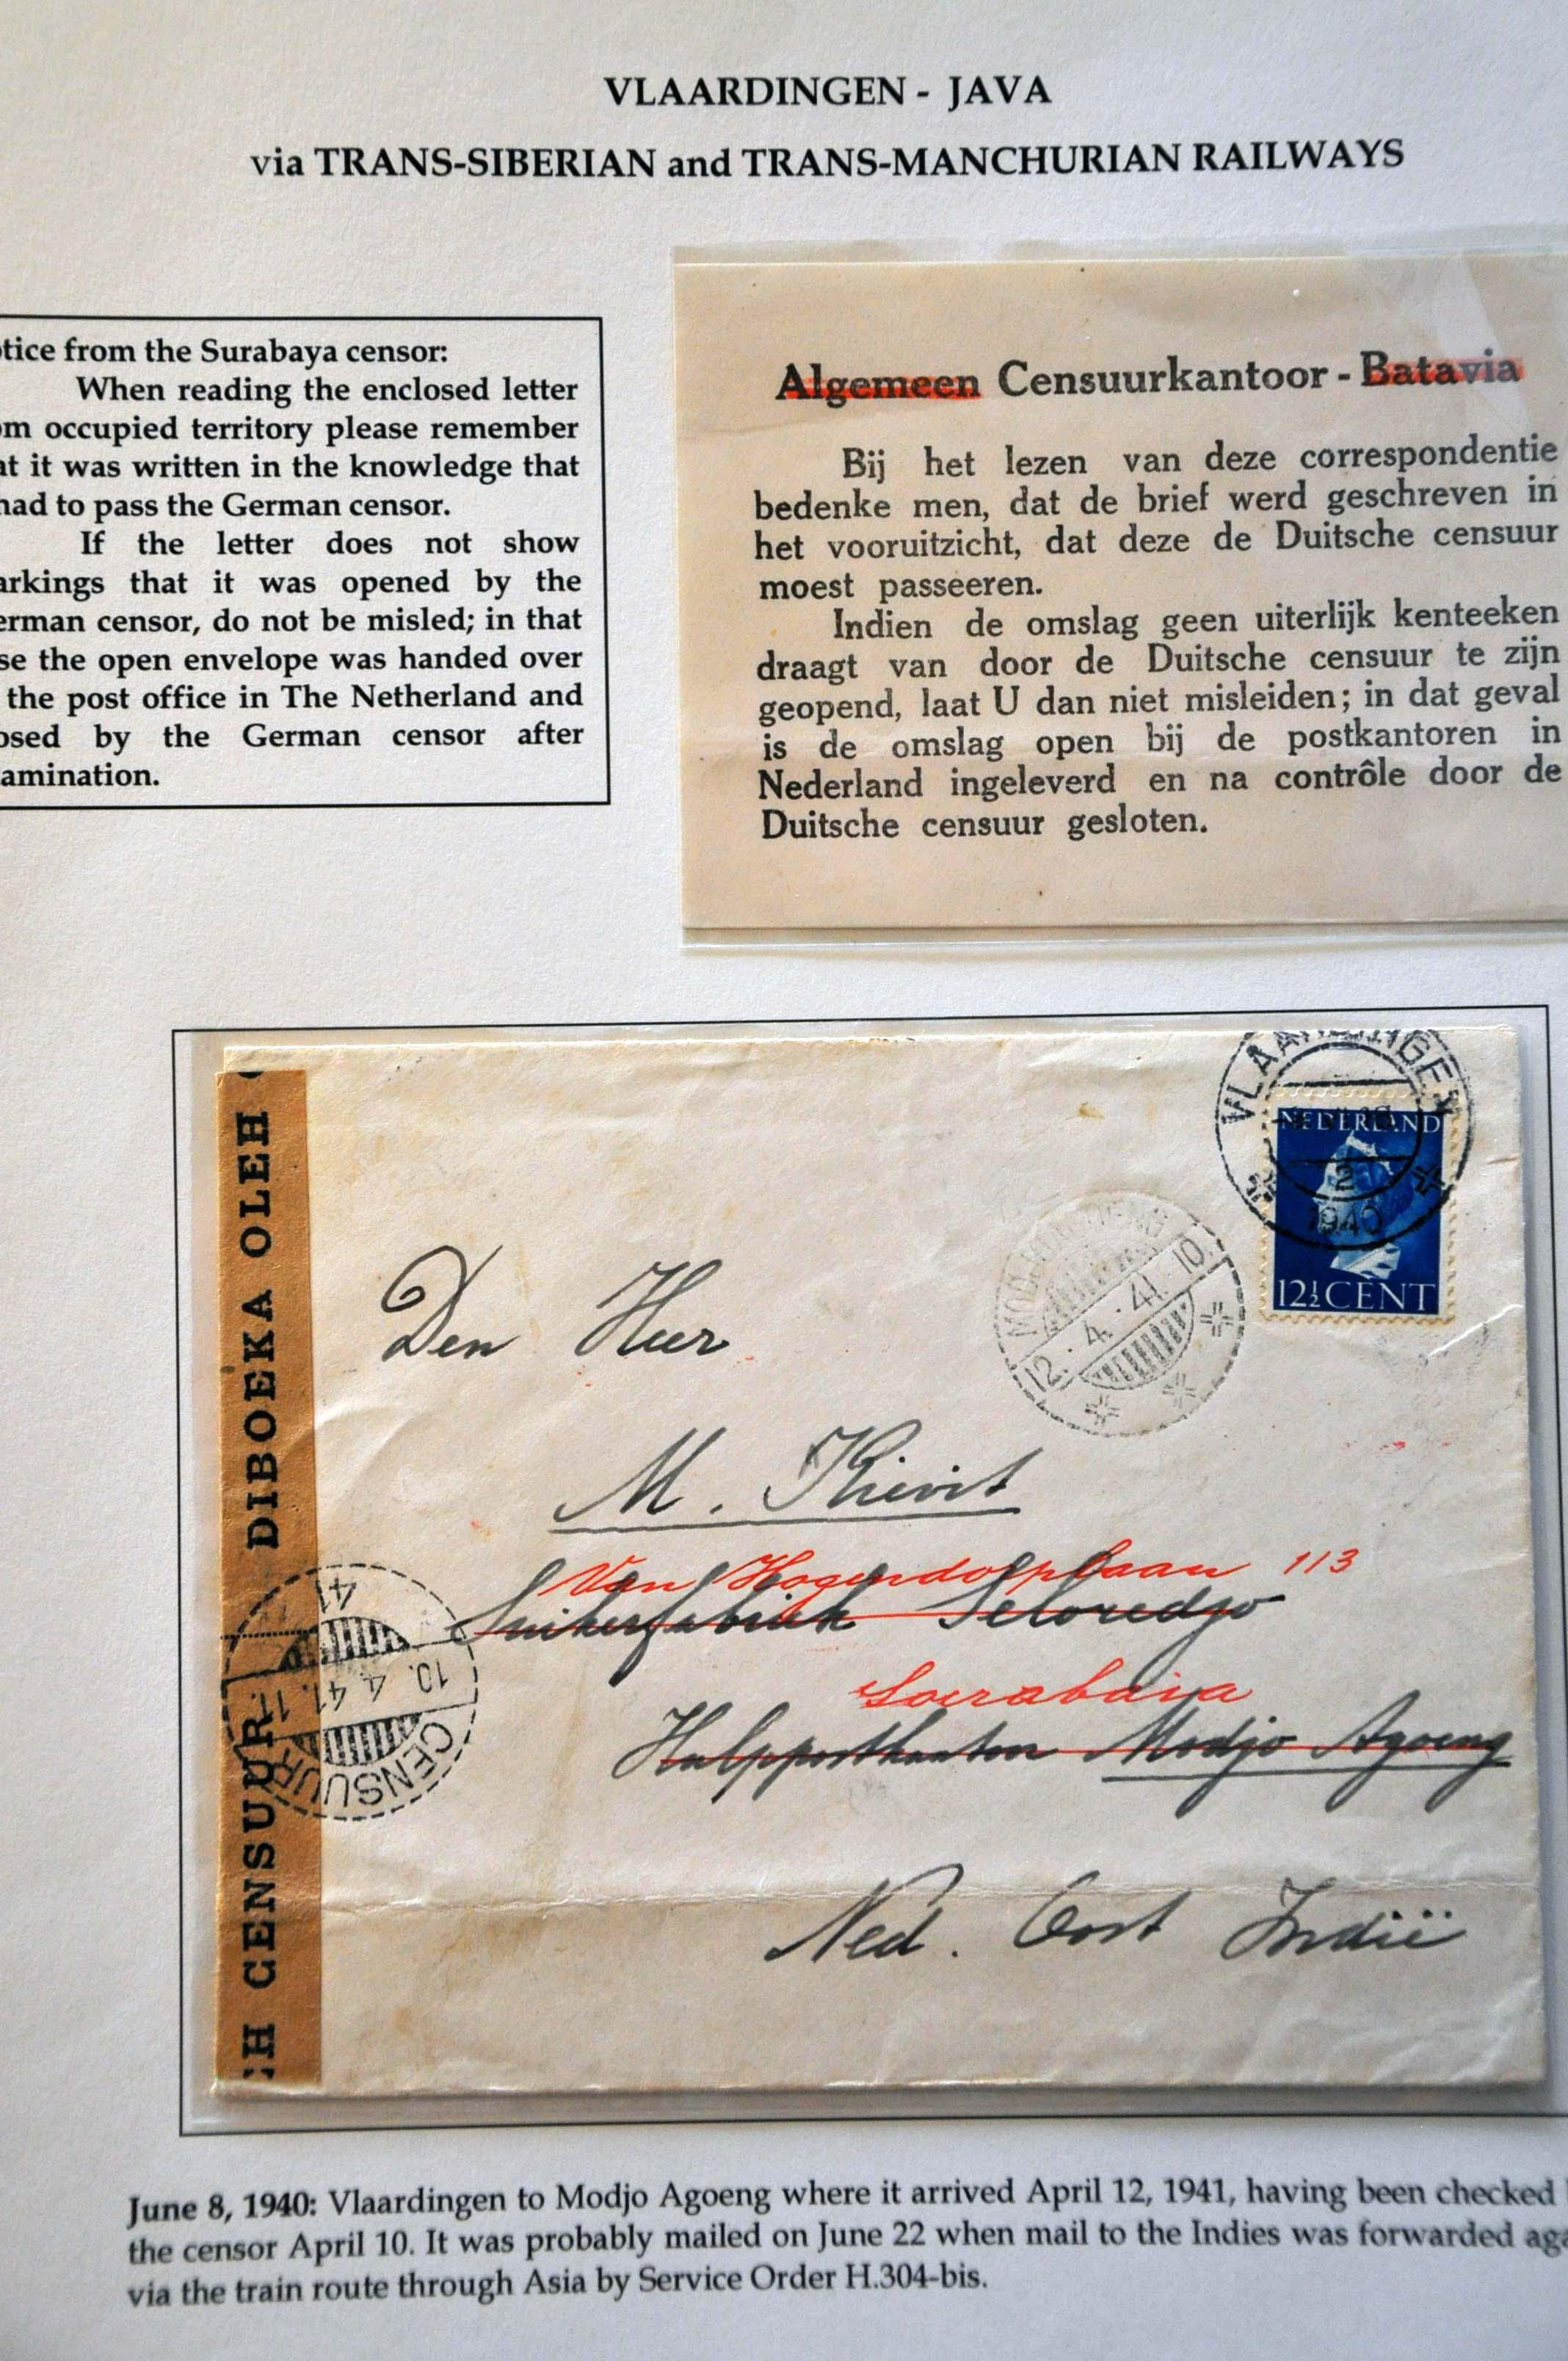 Lot 2813 - Netherlands and former colonies Netherlands -  Corinphila Veilingen Auction 244 -Netherlands and former colonies, WW2 Postal History, Bosnia, German and British colonies, Egypt. - Day 3